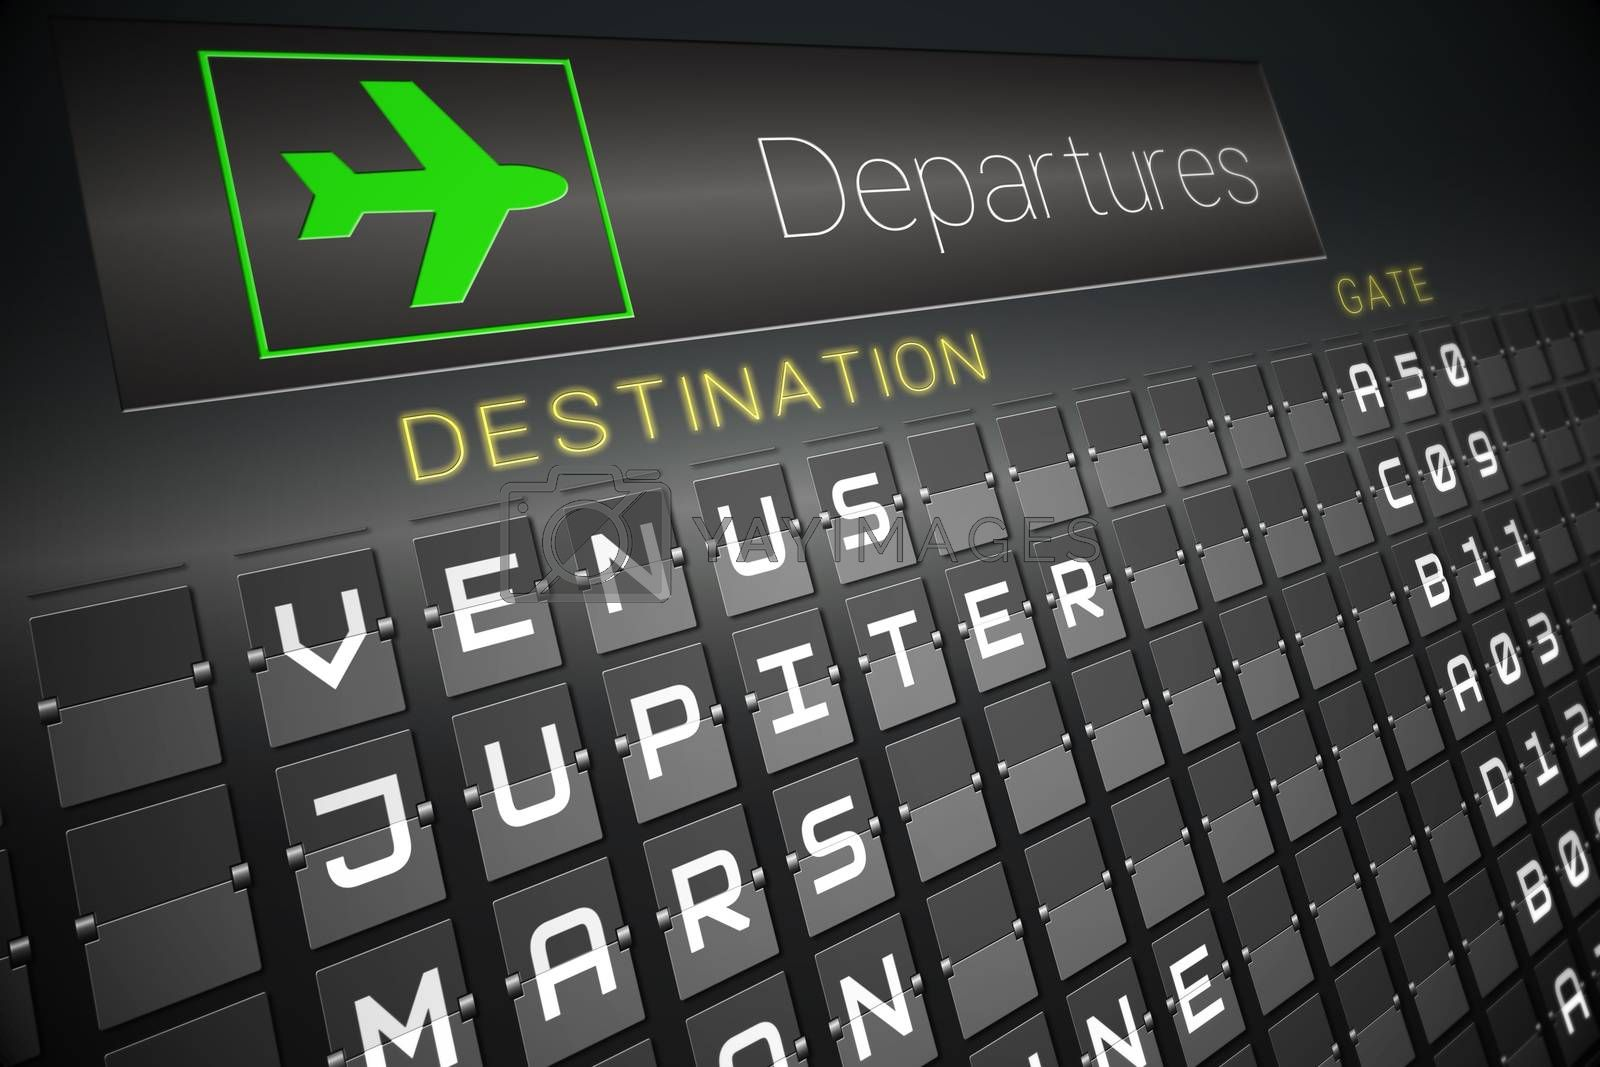 Digitally generated departures board for space travel